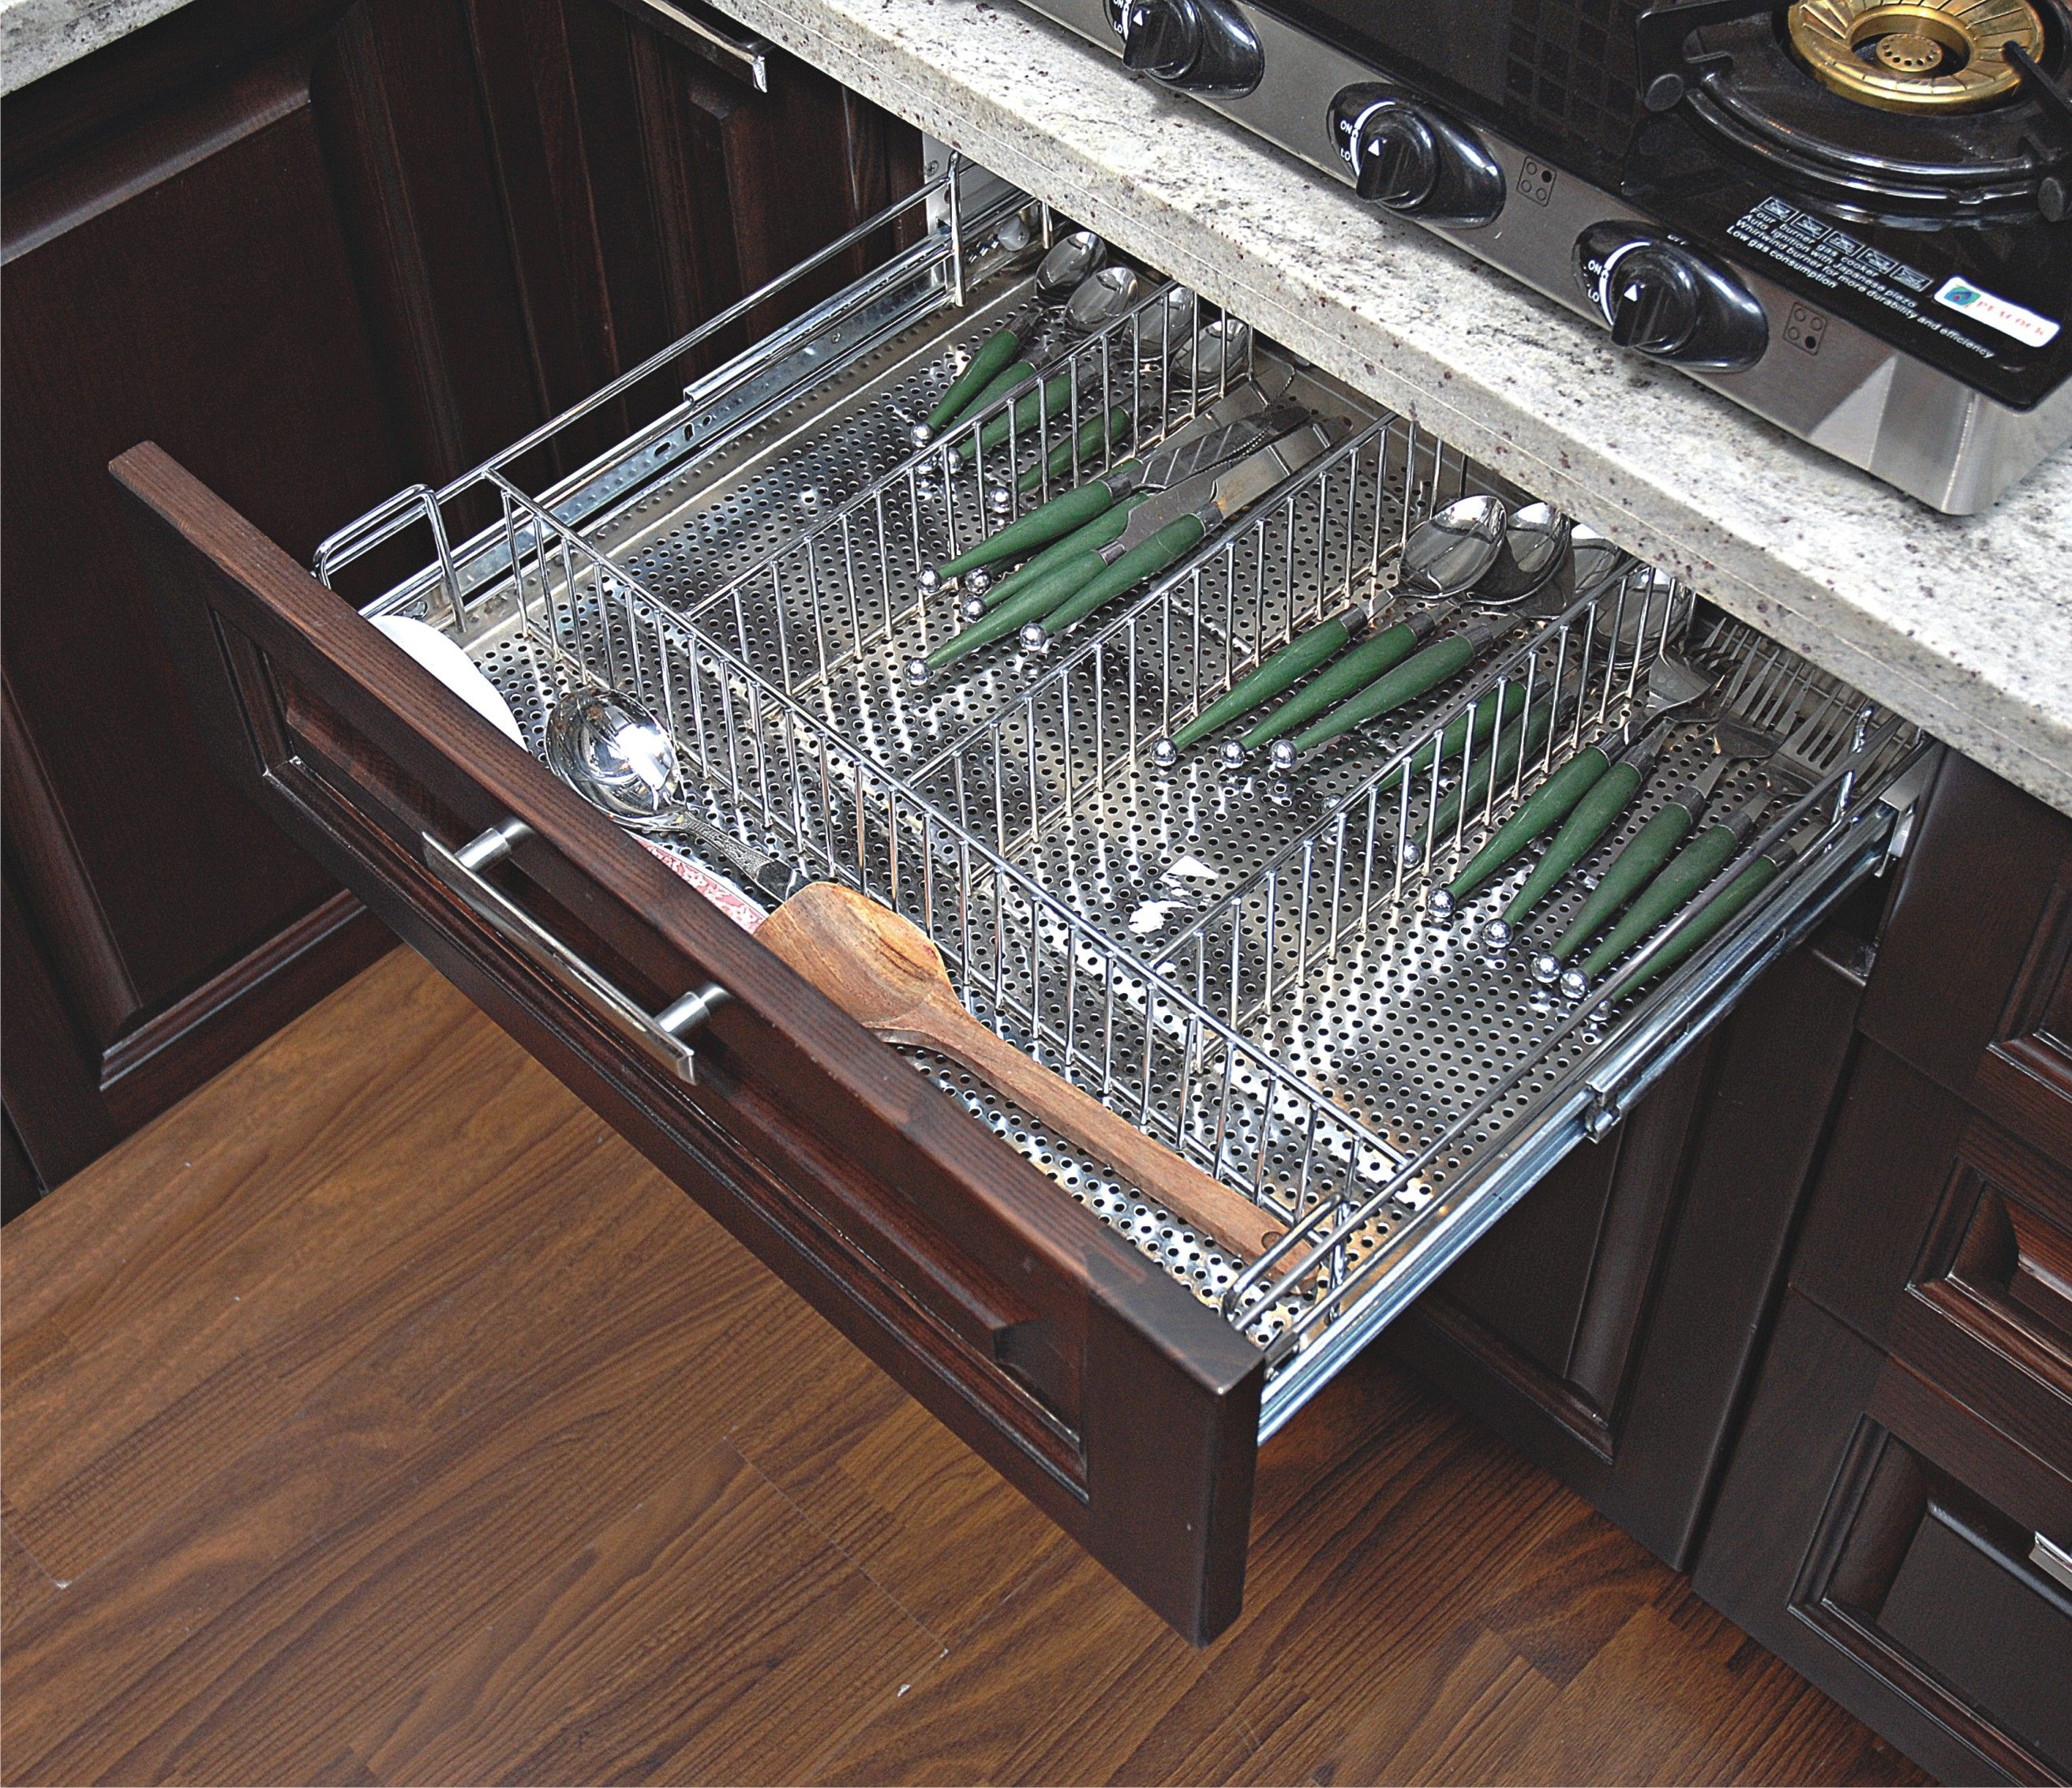 Peacock Revera Is India S No 1 Manufacturers And Suppliers Of Stainless Steel Kitchen Basket Kitchen Baskets Modular Kitchen Cabinets Kitchen Furniture Design